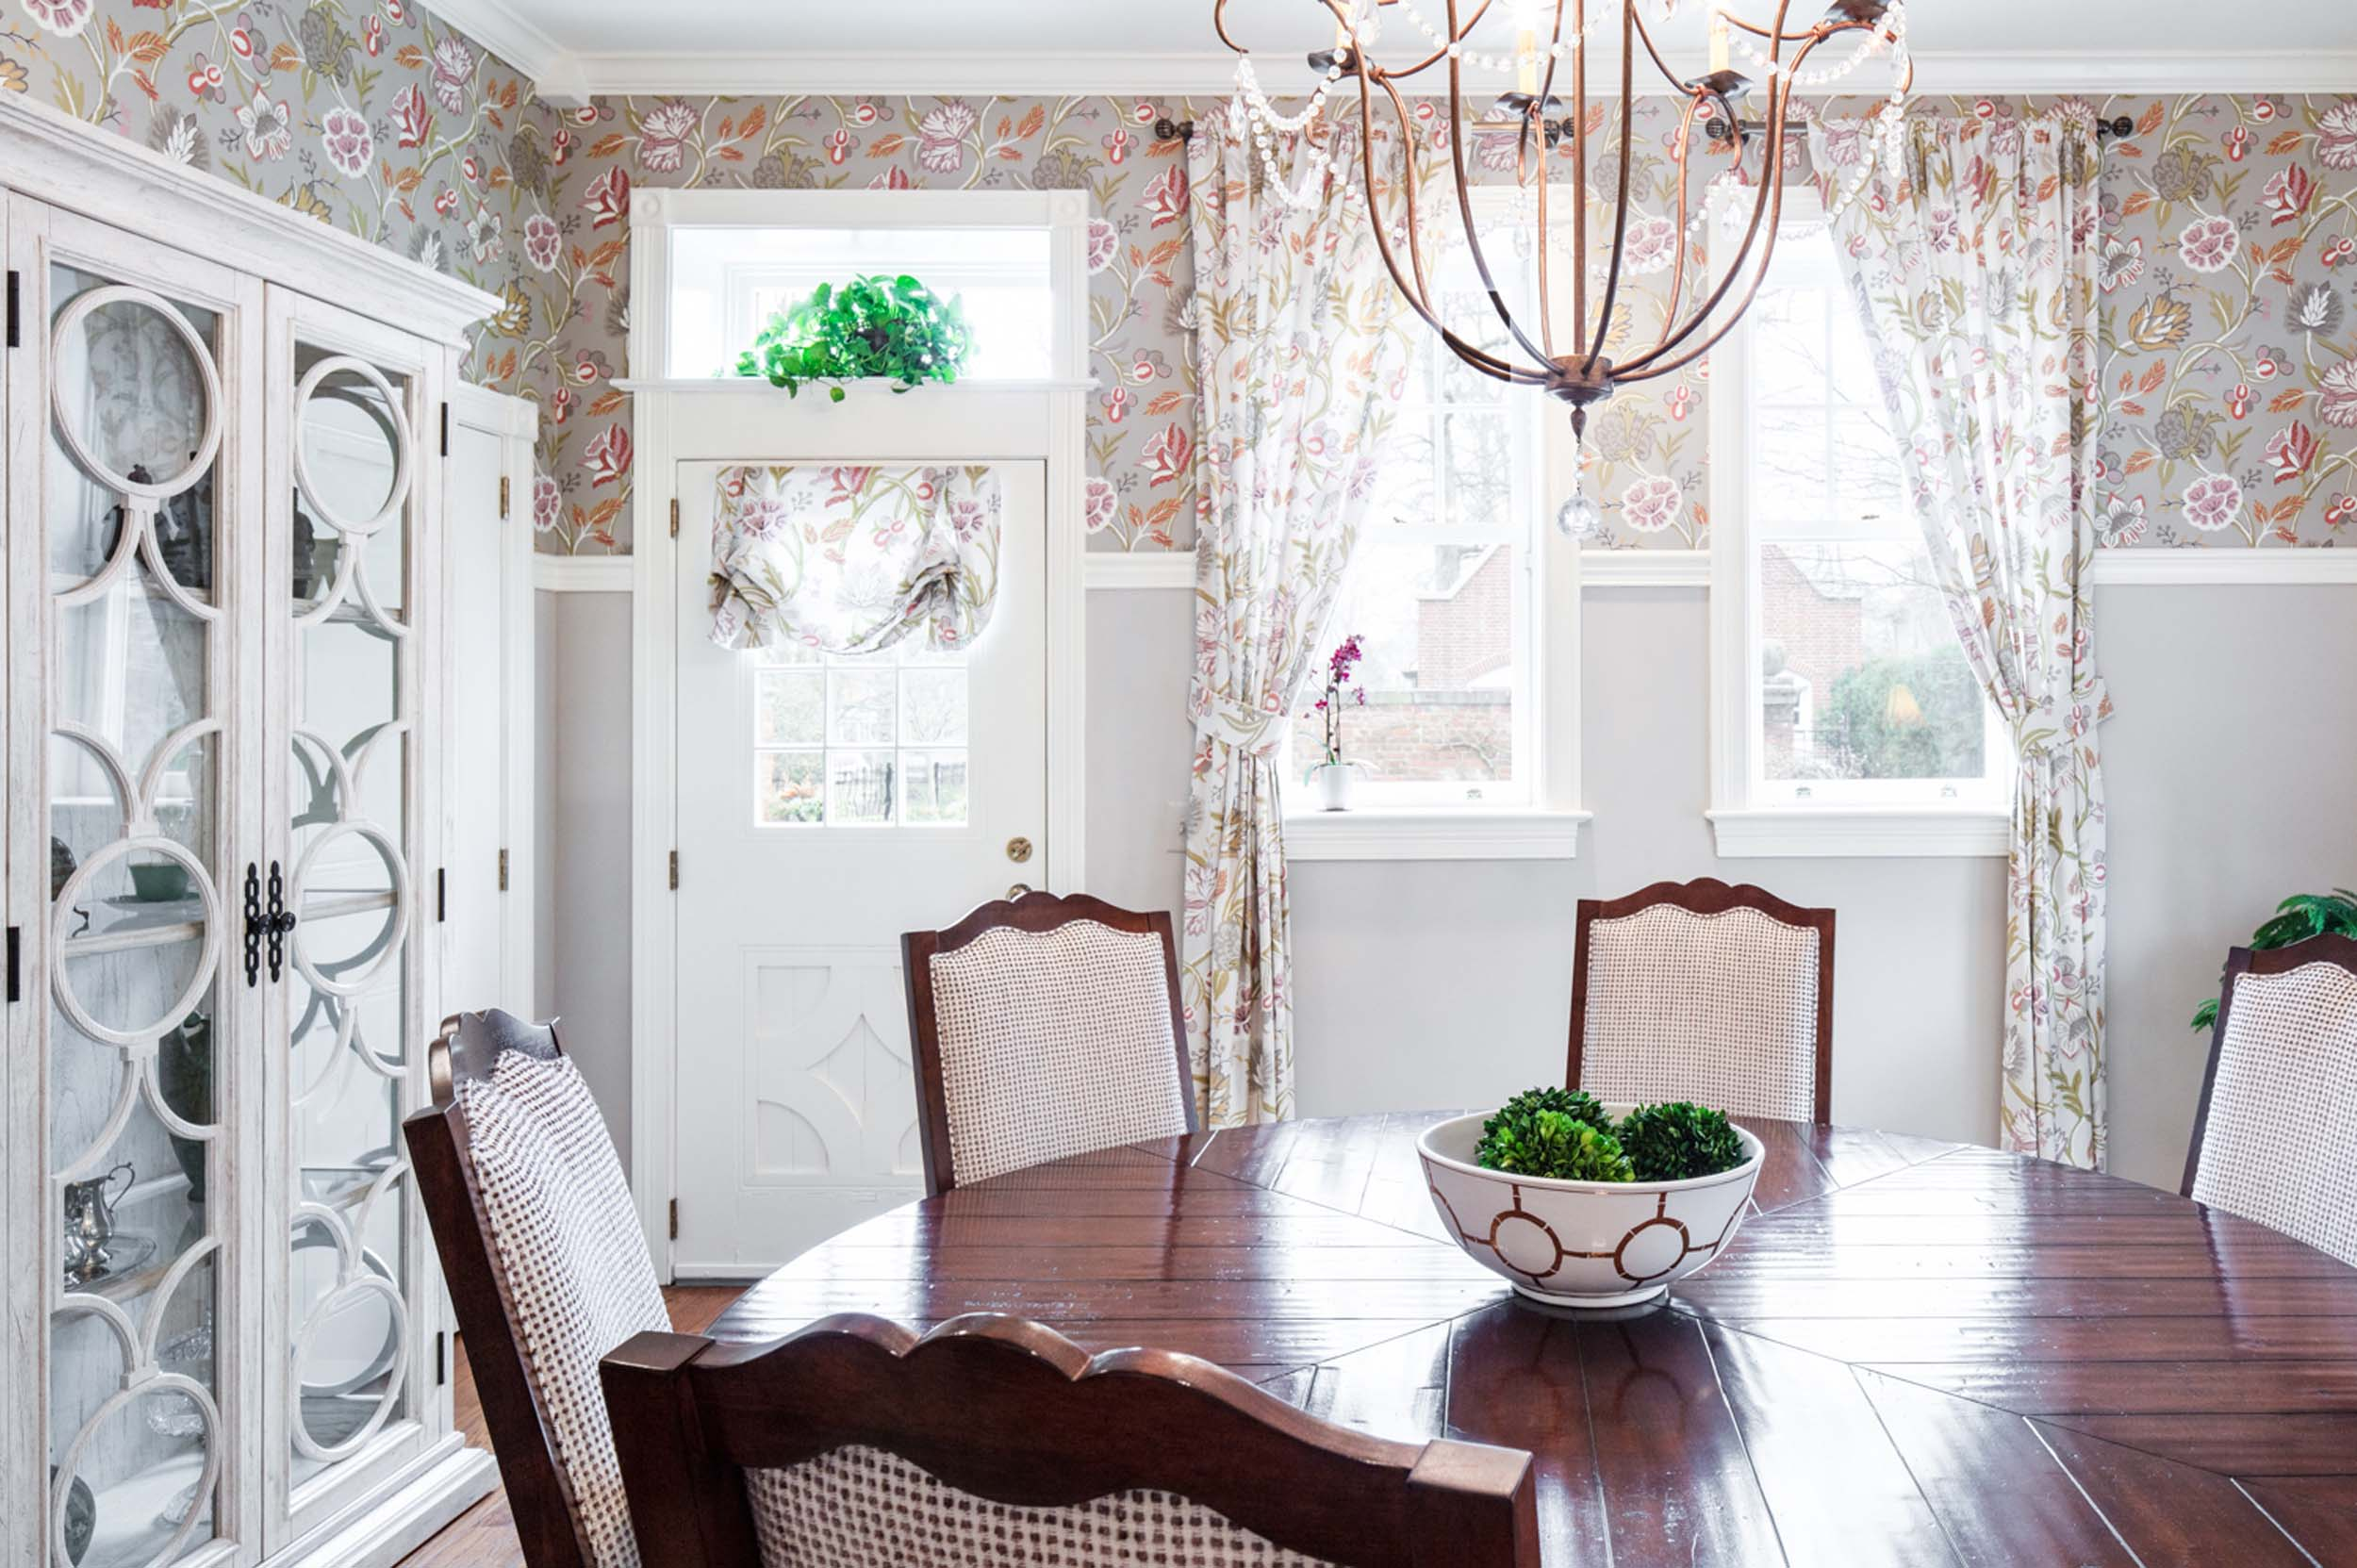 Dining area with white door, round wooden table and chairs